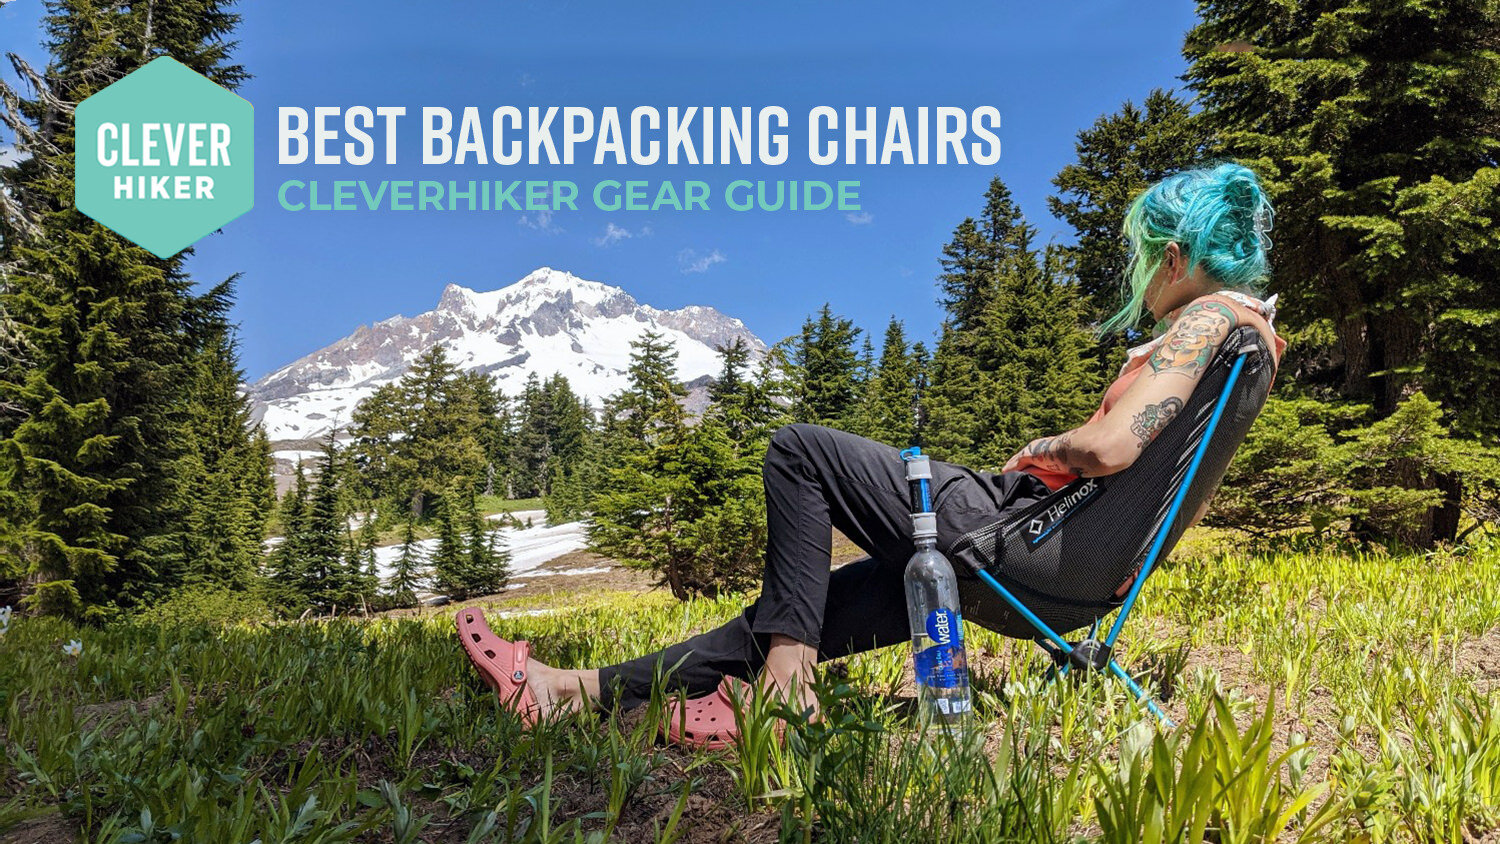 Kingmodern Folding Camping Ultralight Backpack Chair Stool 3 in 1 Multi-Function Fishing Portable Hiking Seat for Outdoor Travel BBQ